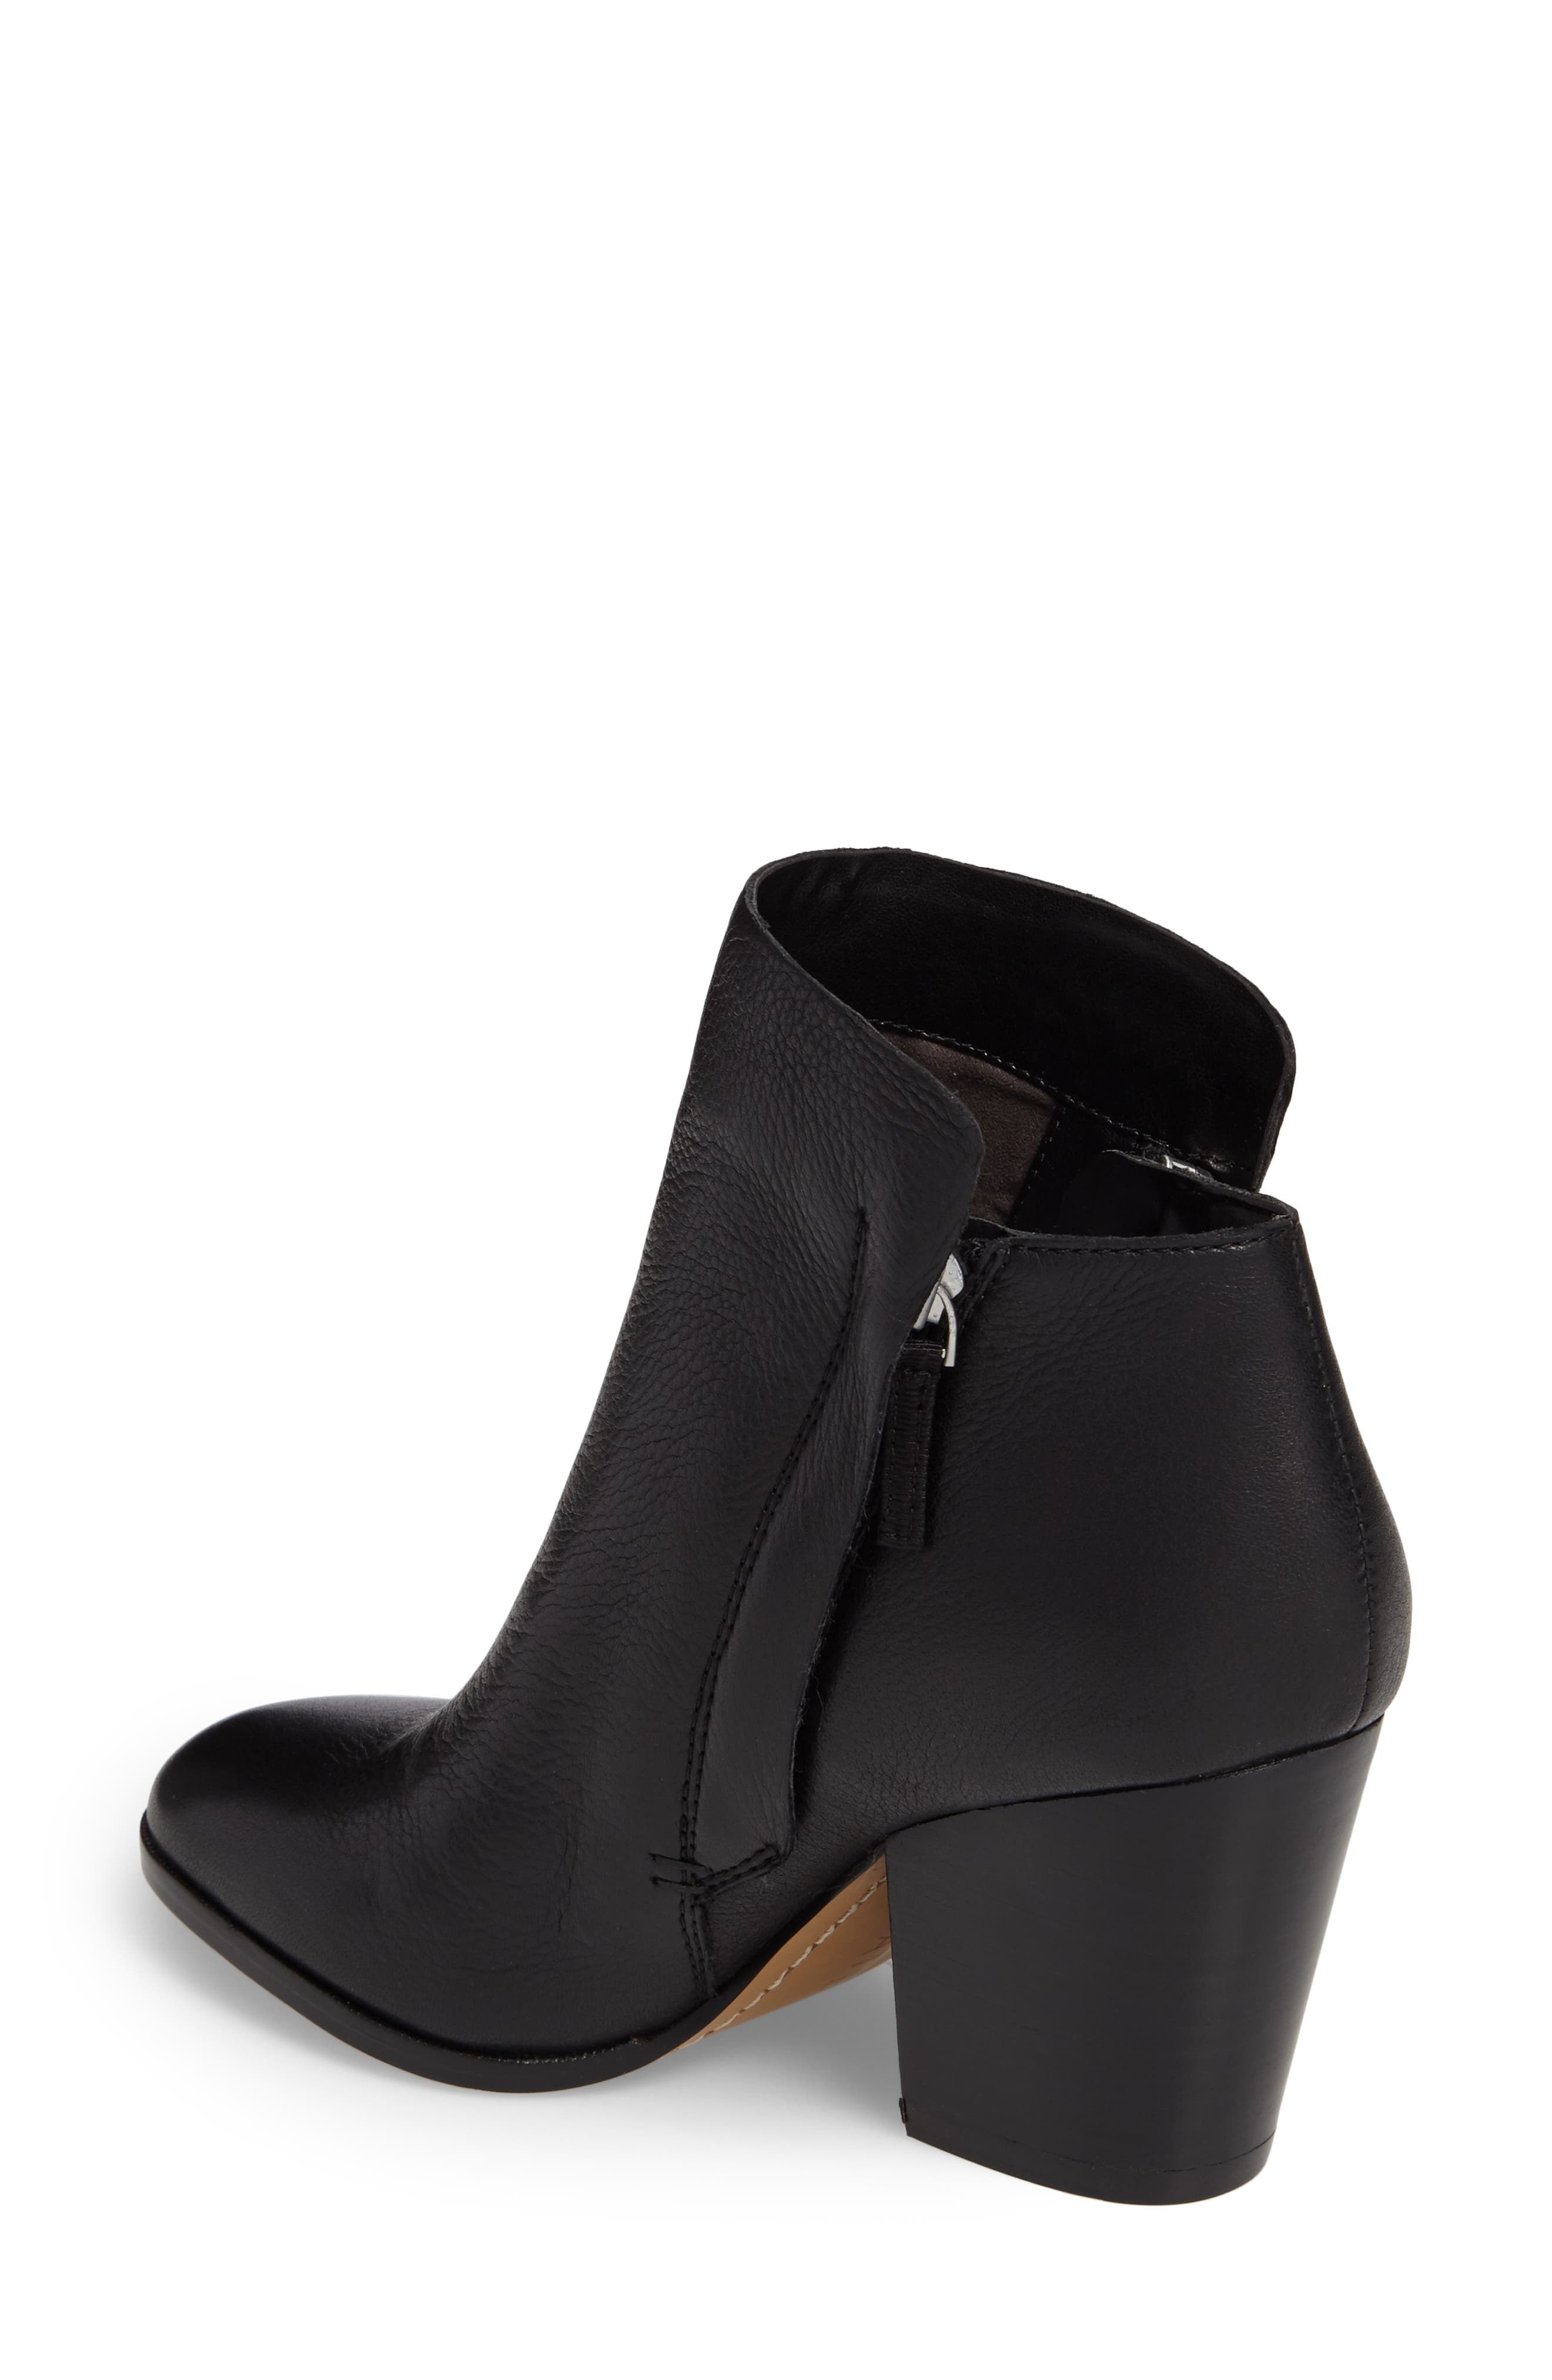 Taila Angle Zip Bootie,                             Alternate thumbnail 3, color,